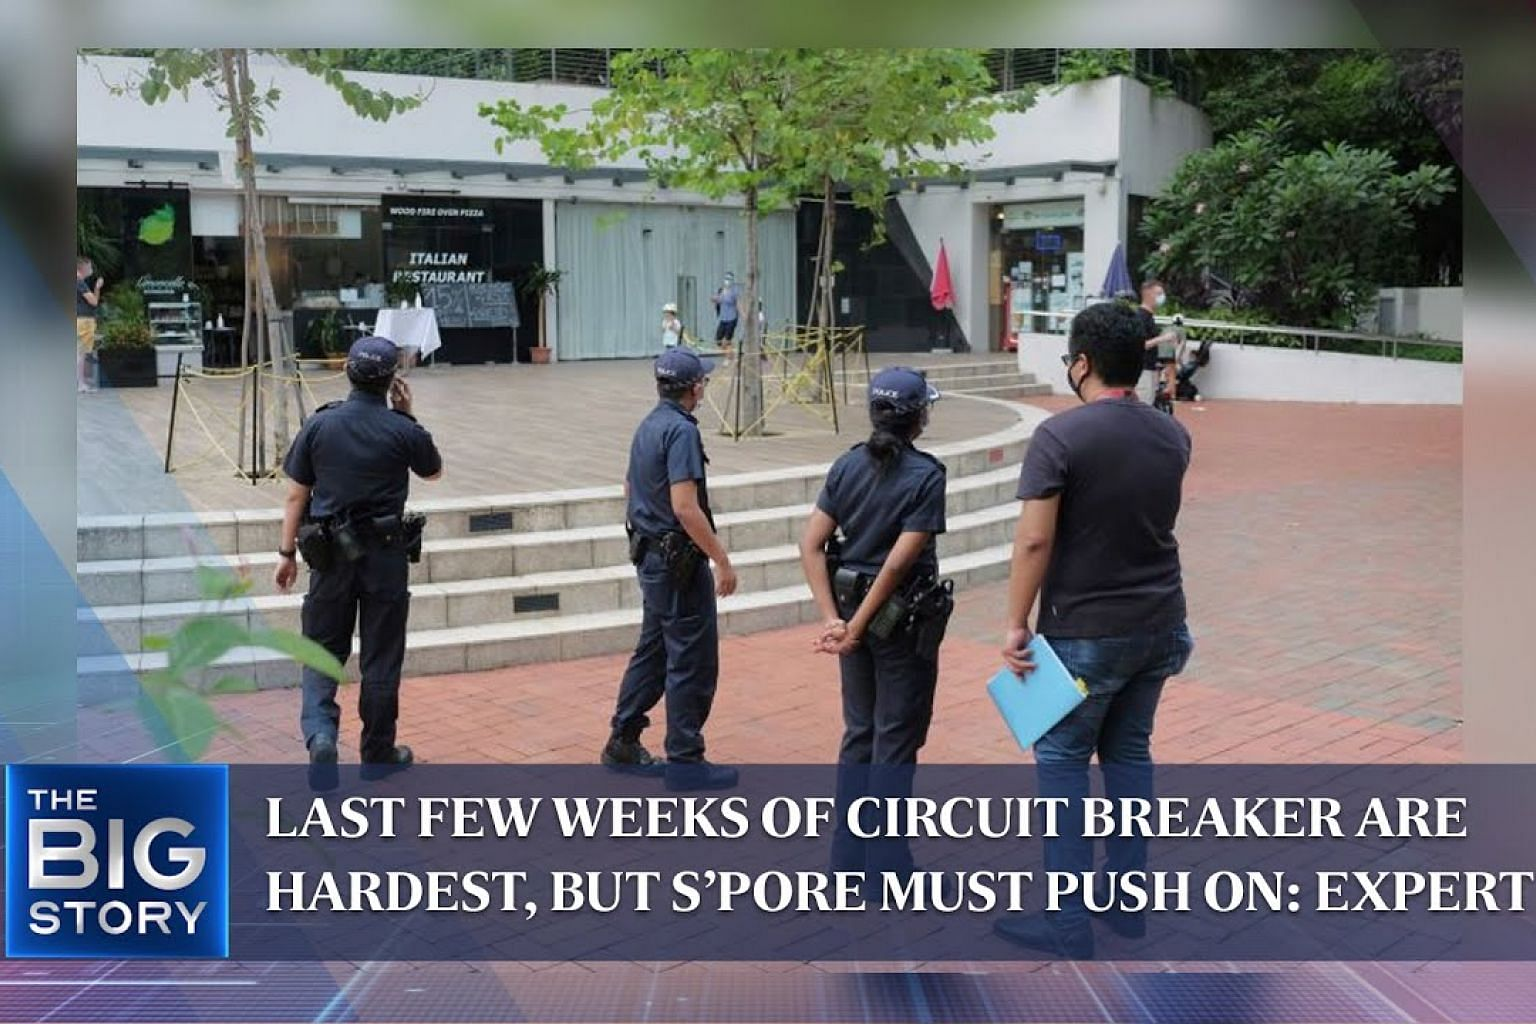 Covid-19 complacent? Final days of circuit breaker will be hardest says expert | THE BIG STORY